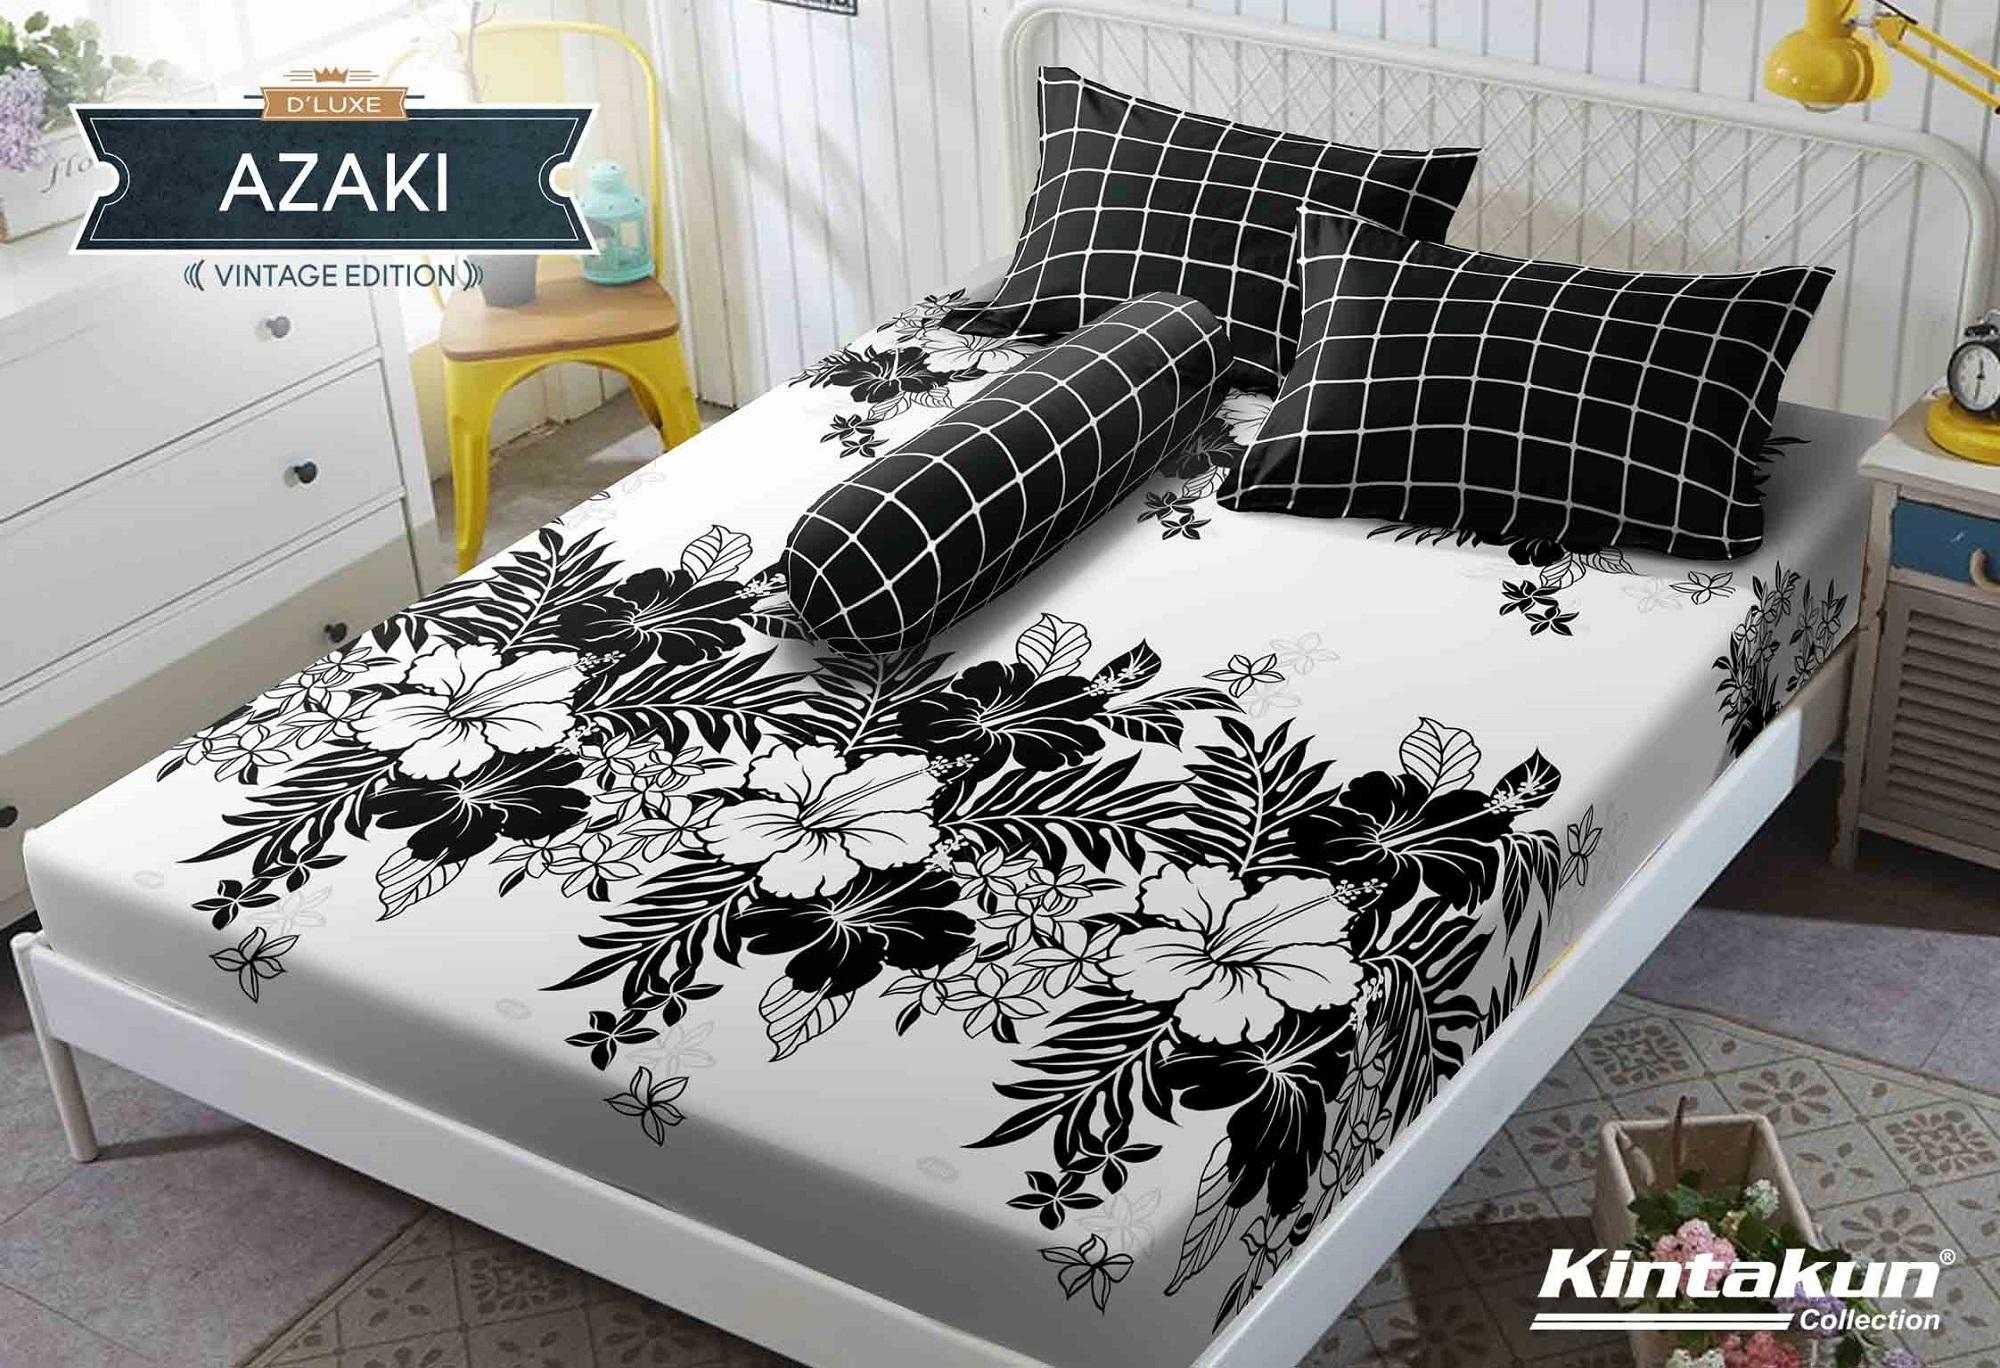 Sprei Kintakun DLuxe Single Size Vintage Edition Uk. 120x200 cm - Azaki